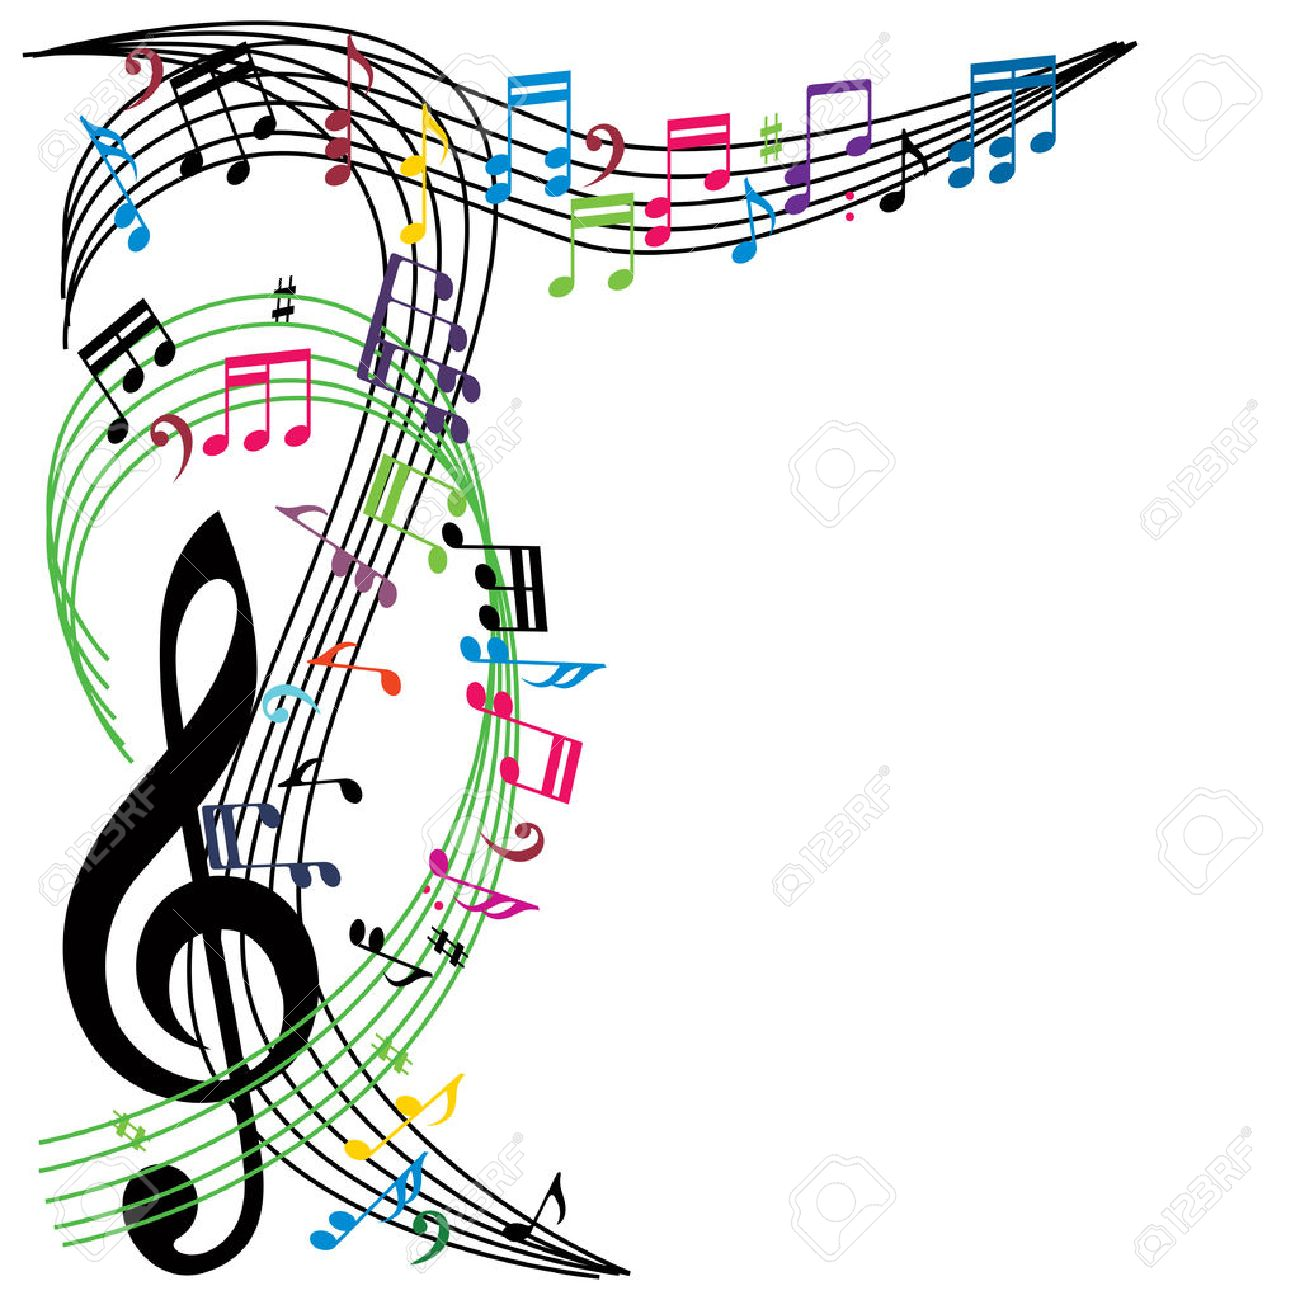 Musical Wallpaper Borders: Free Download Best Colorful